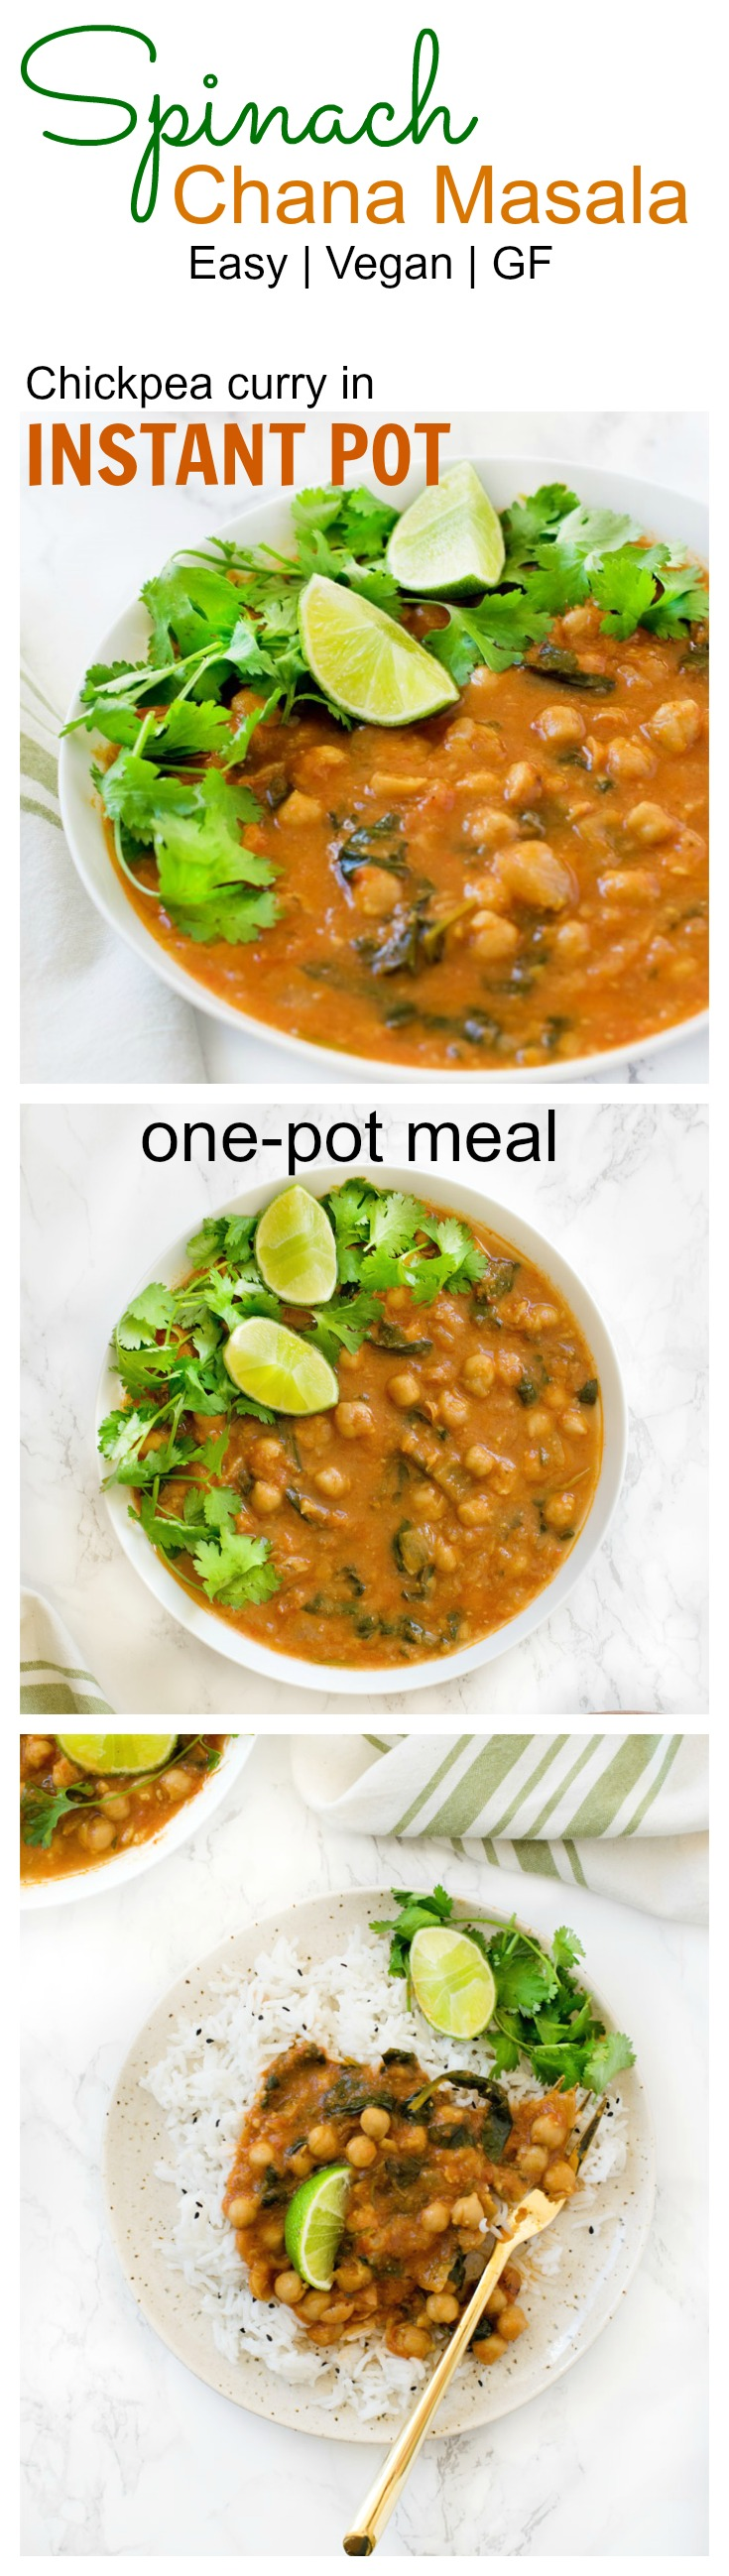 spinach-chana-masala-easy